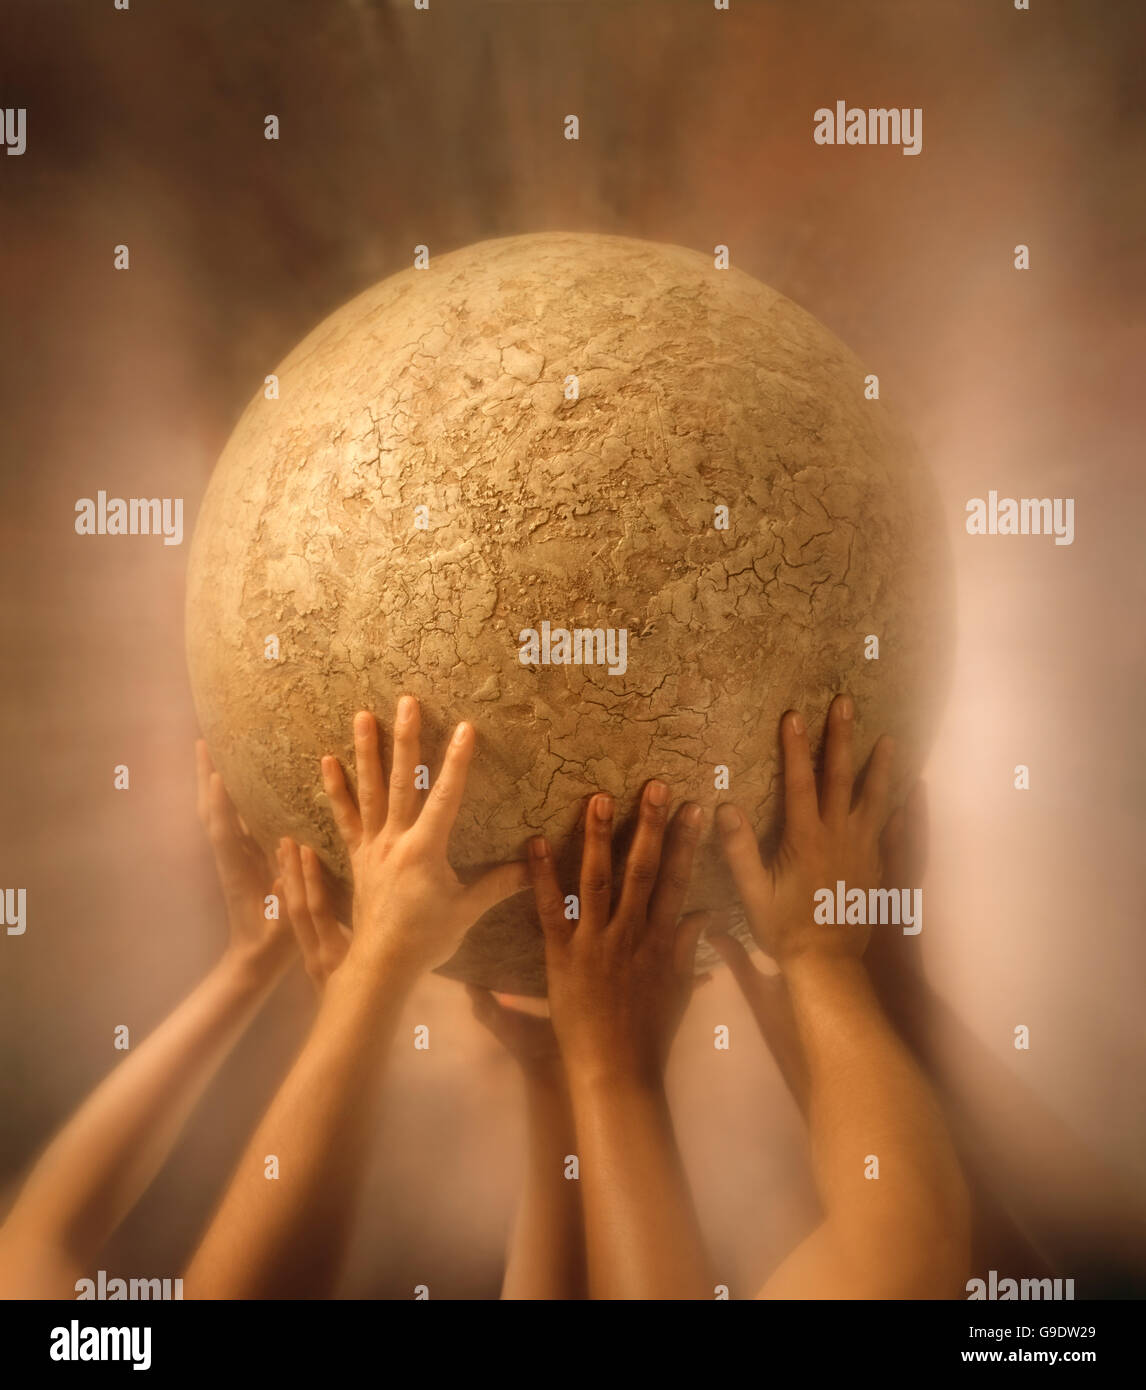 Human hands holding up a round-shaped structure showing teamwork - Stock Image